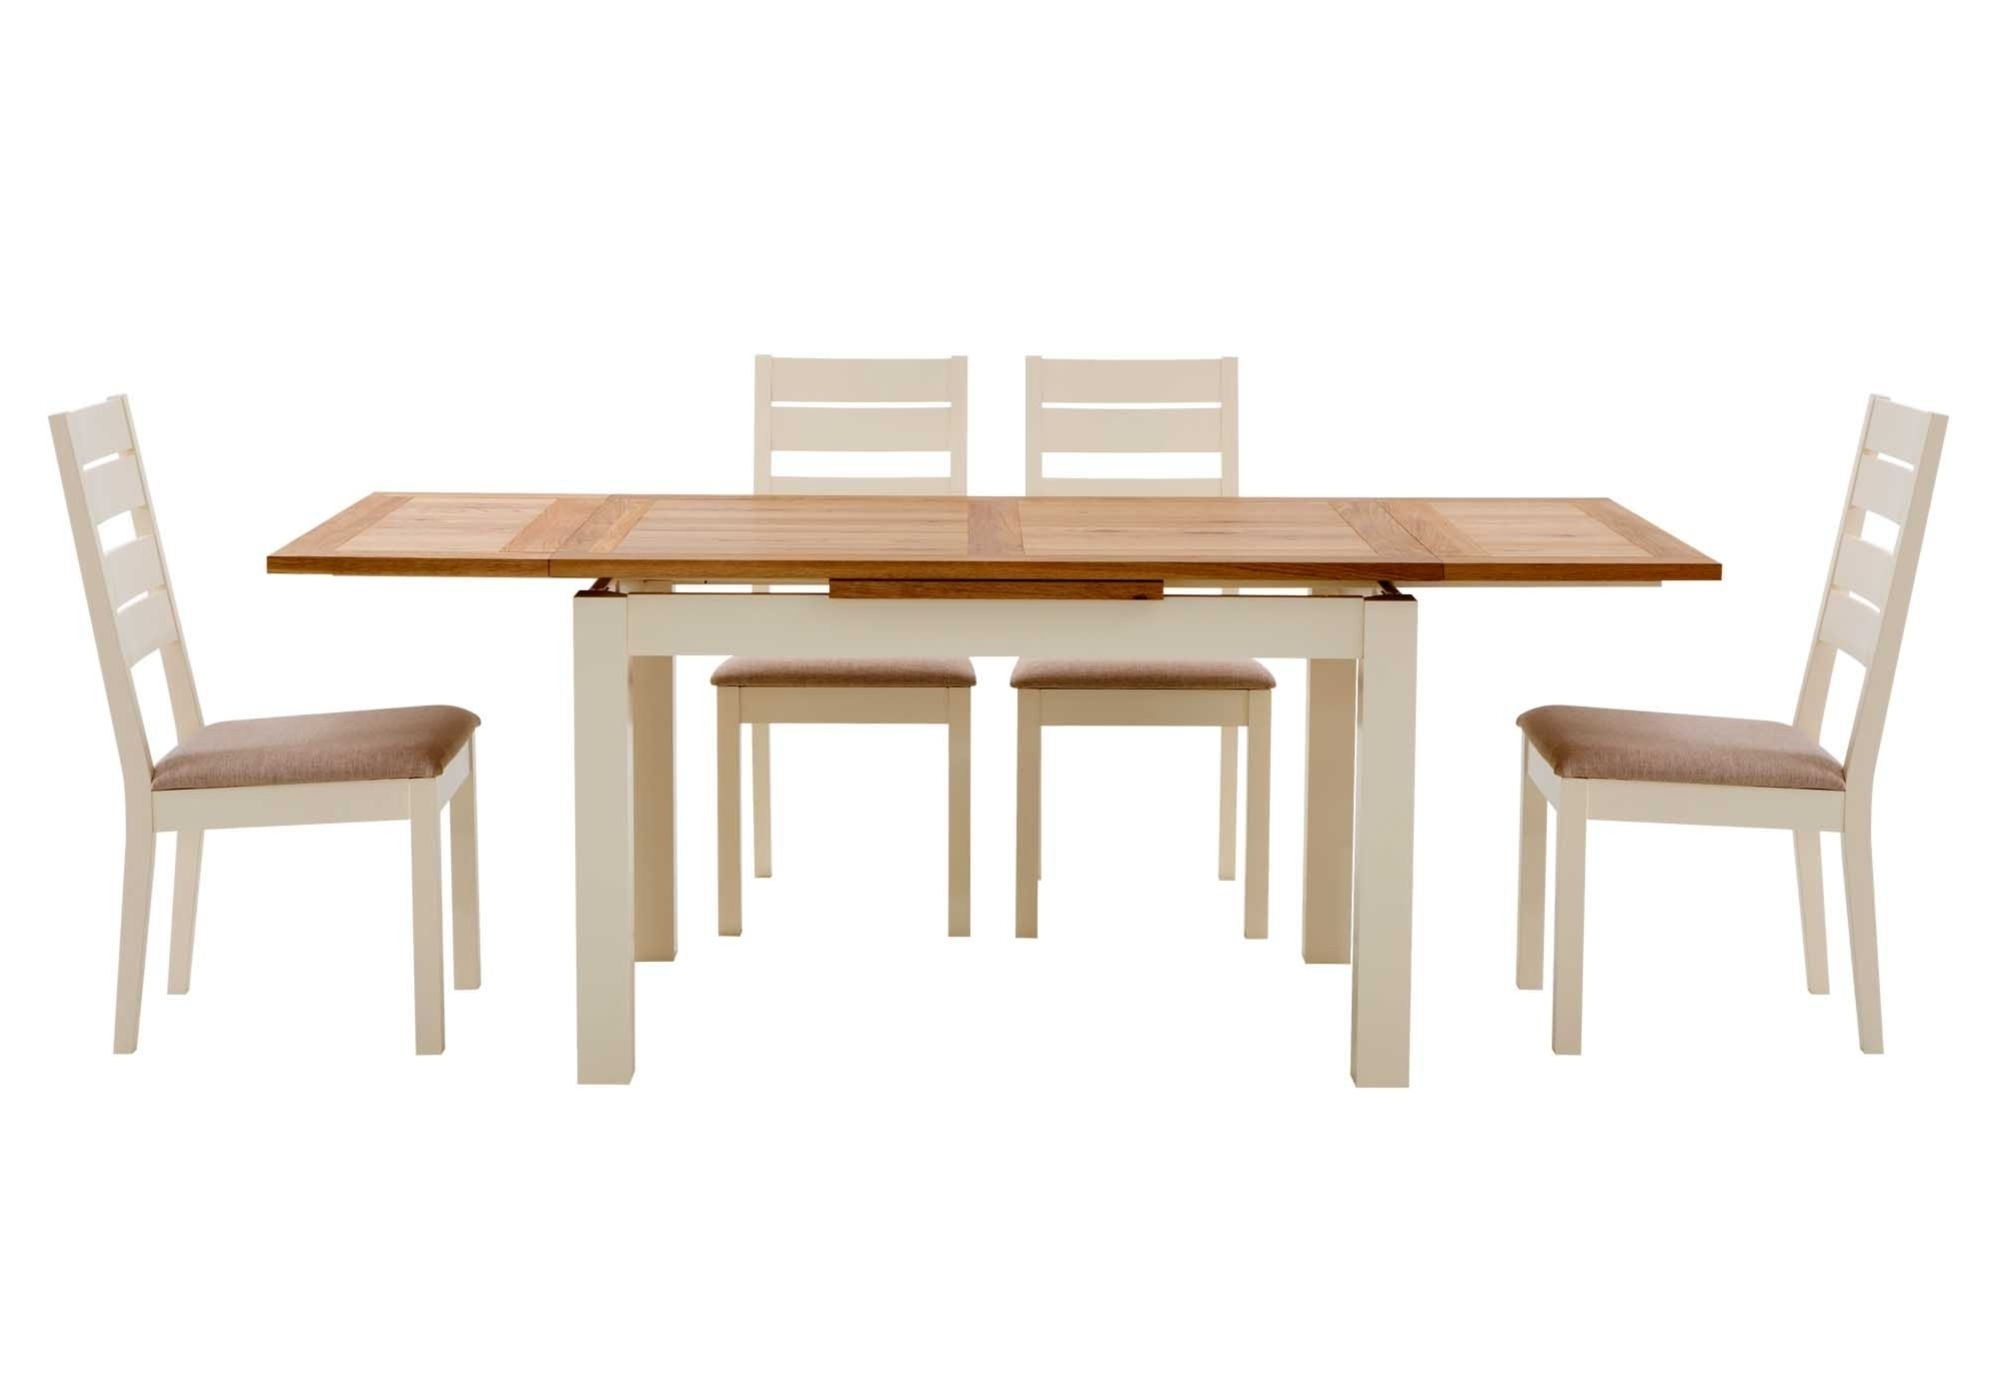 Extendable Dining Tables And 4 Chairs Within Popular An Extending Dining Table Would Be Really Useful (View 14 of 25)